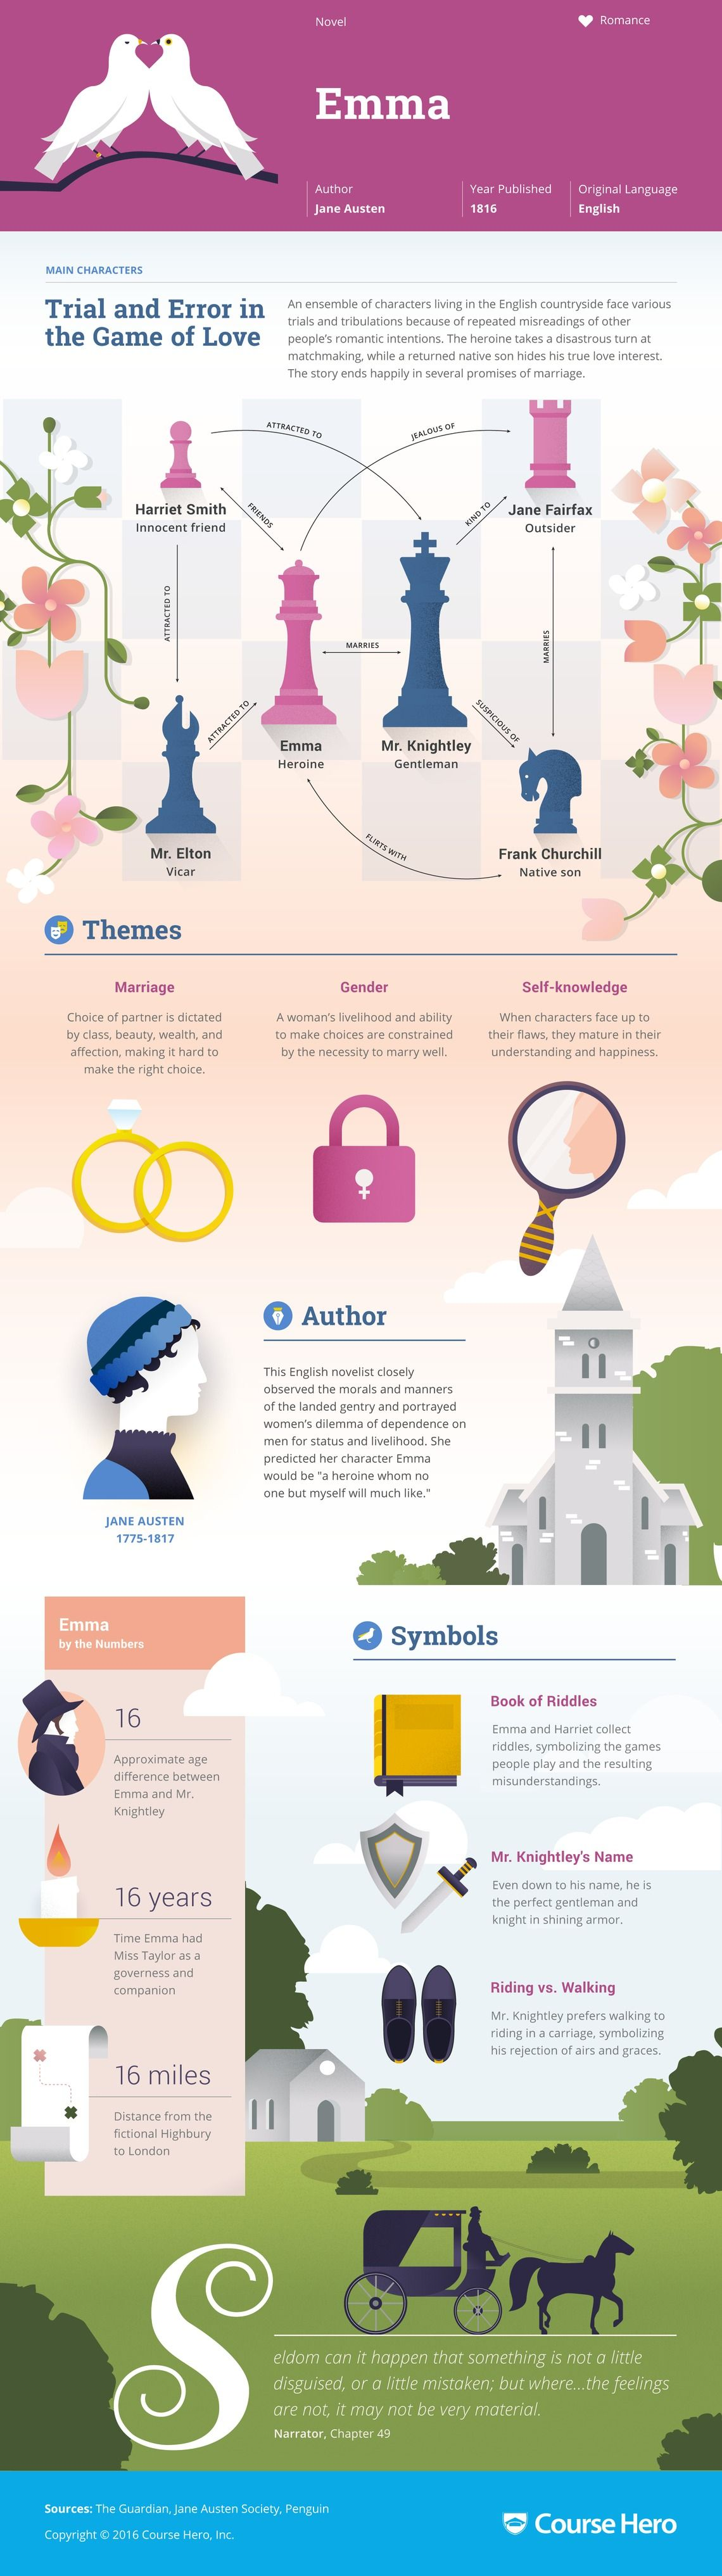 emma by jane austen infographic course hero my humanities emma by jane austen infographic course hero